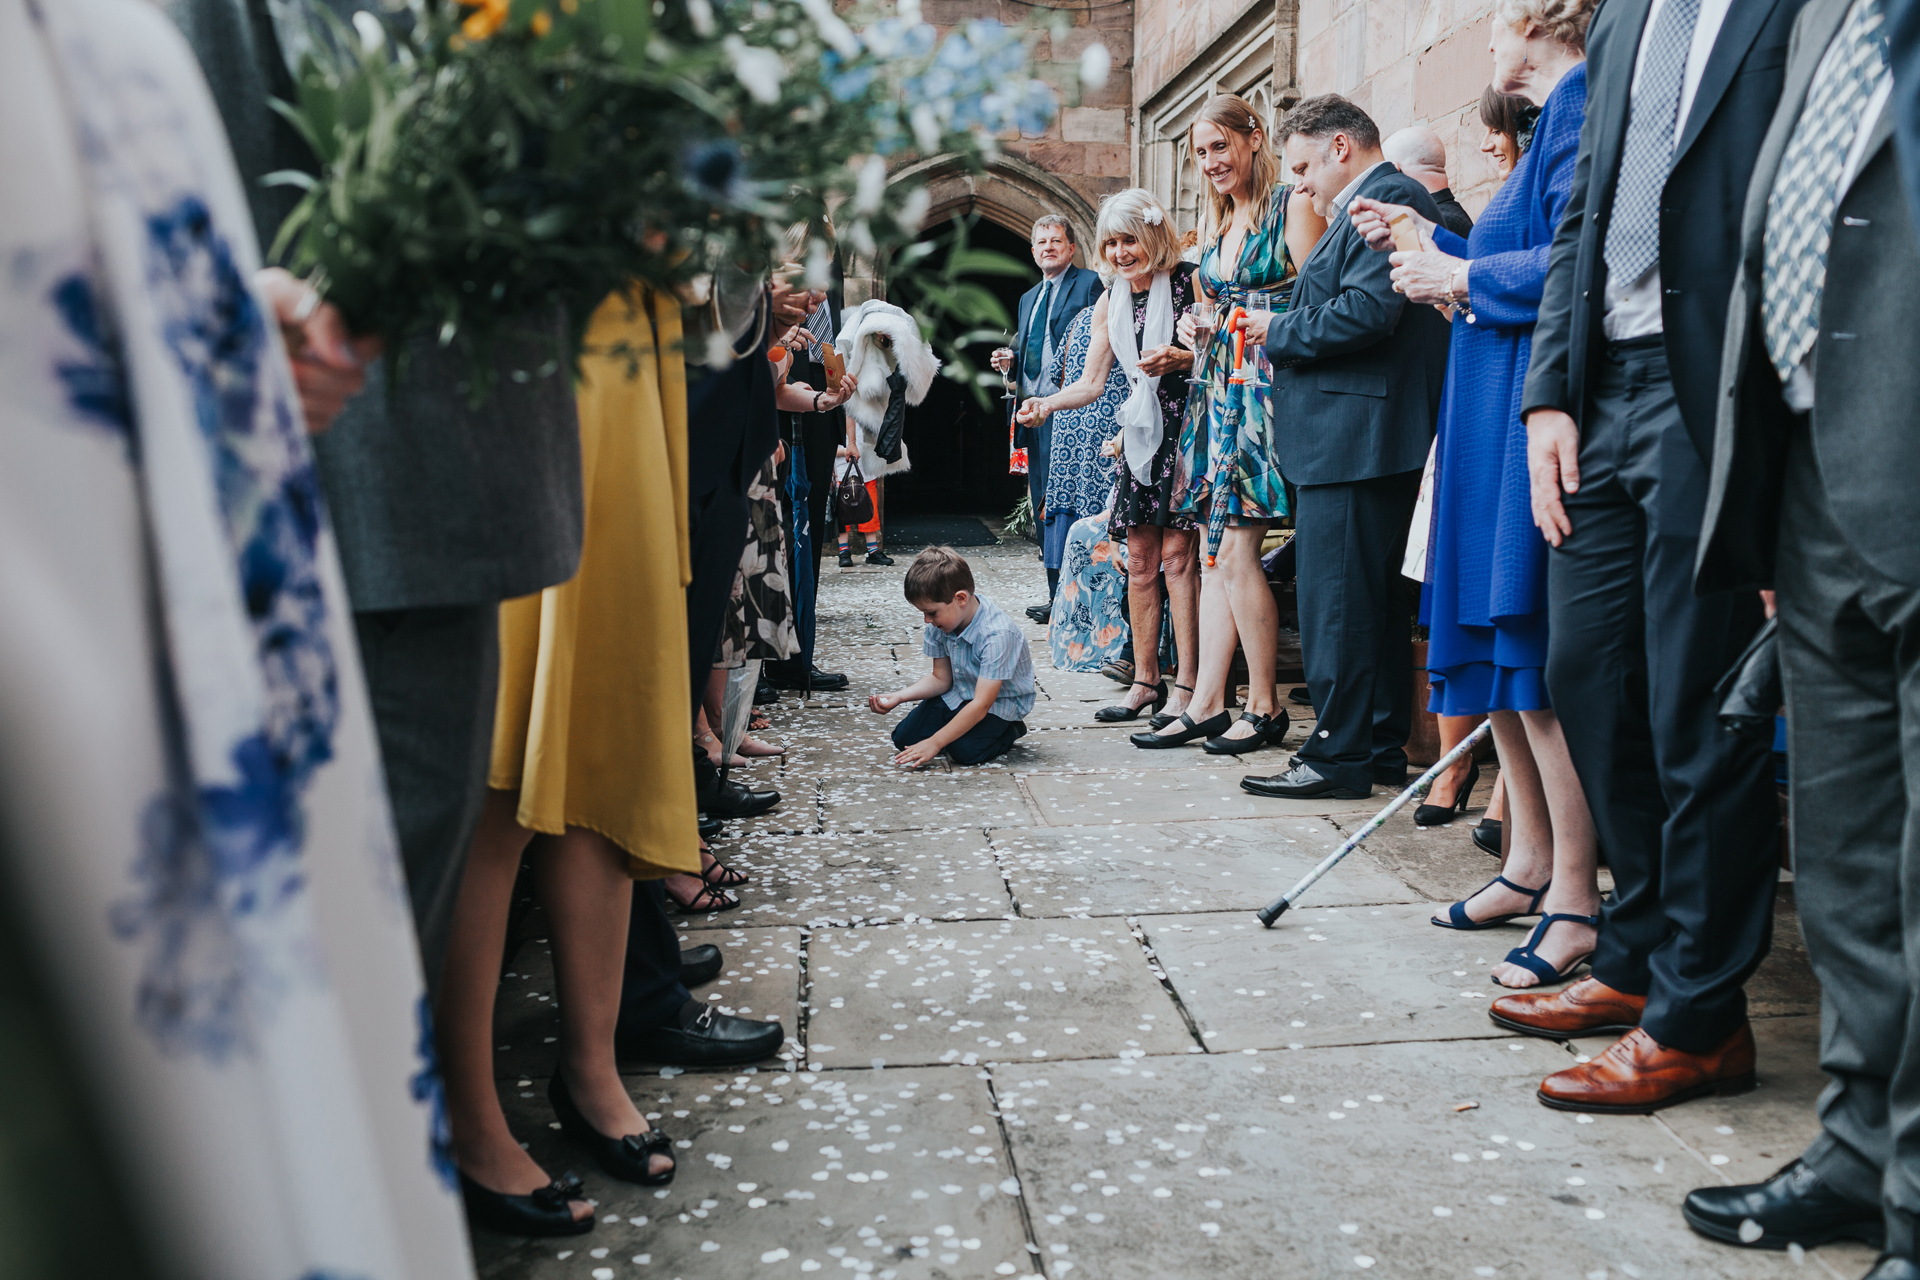 Little boy picks confetti up off the floor.